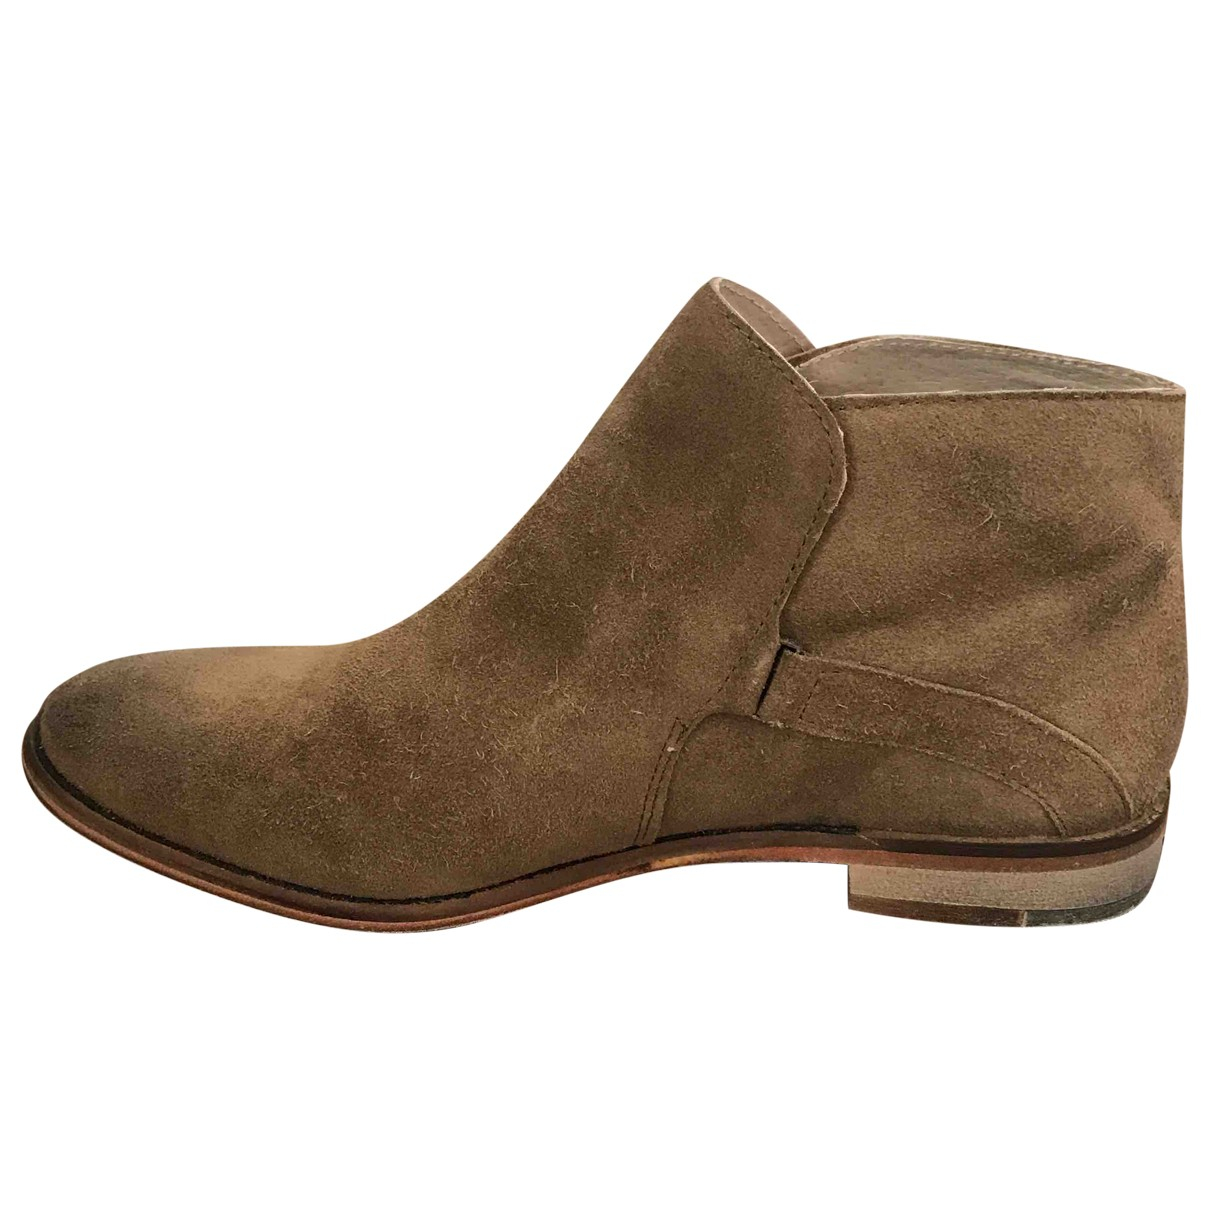 Free People N Beige Suede Boots for Women 5 UK